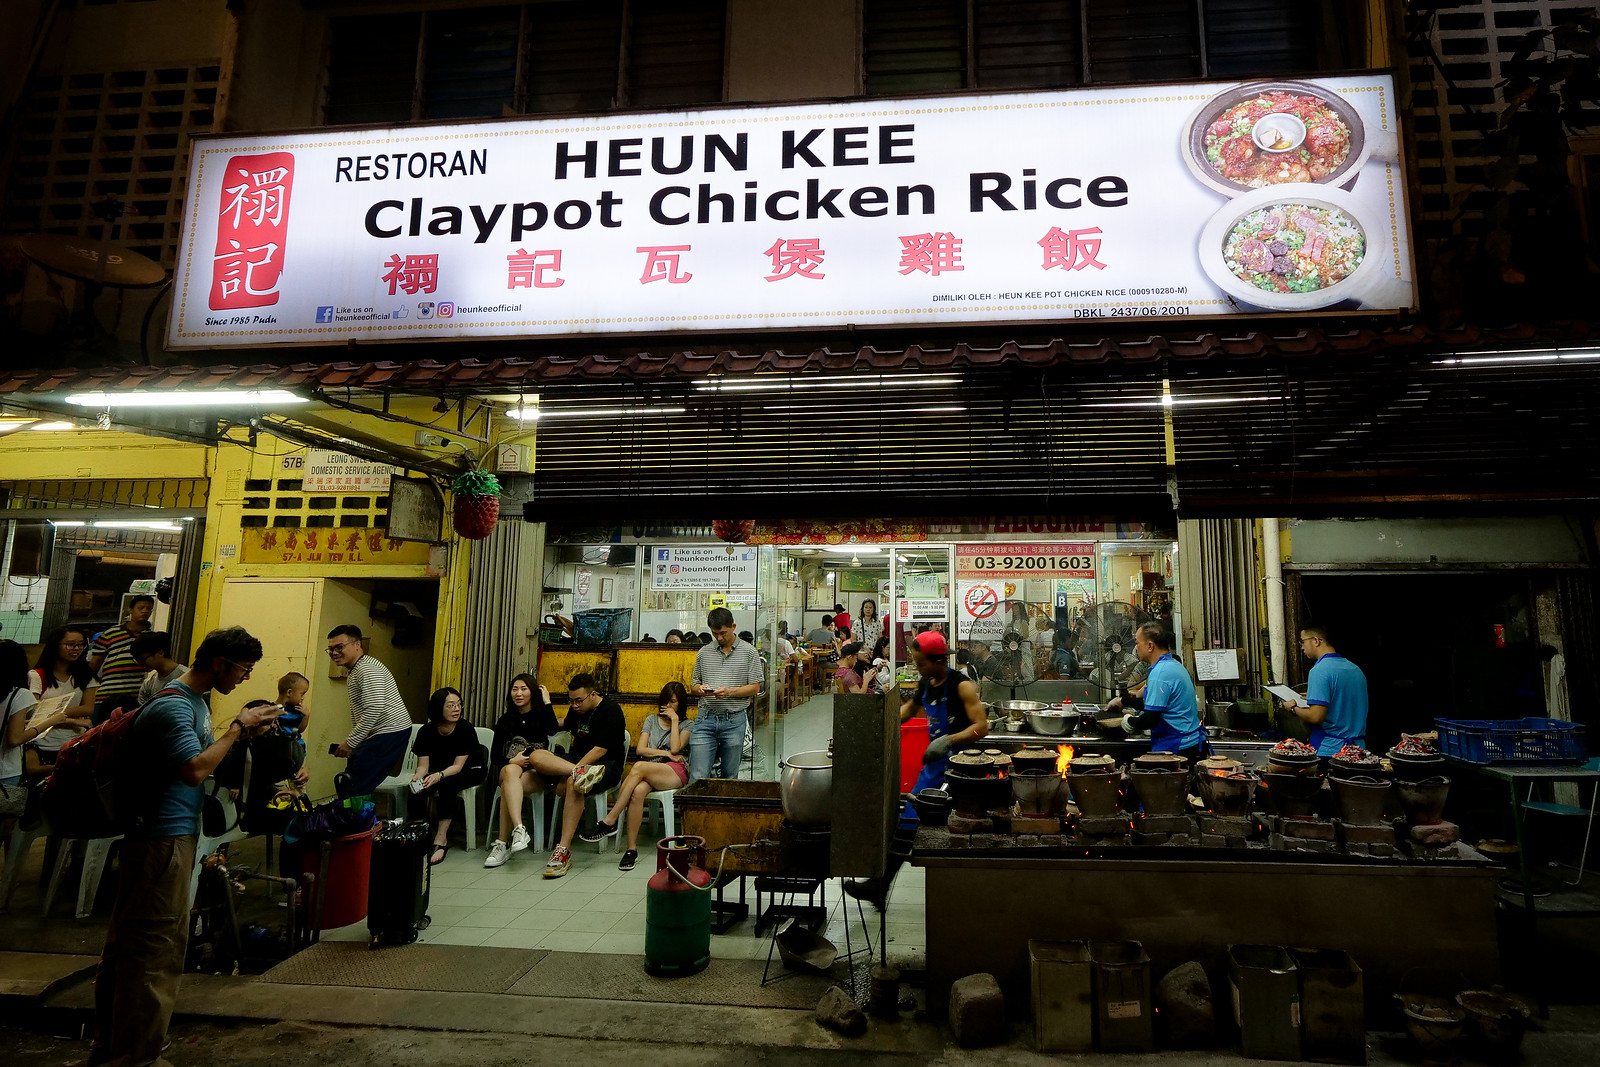 Amazing bowls of Claypot Chicken Rice at Heun Kee Restaurant in Kuala Lumpur Malaysia